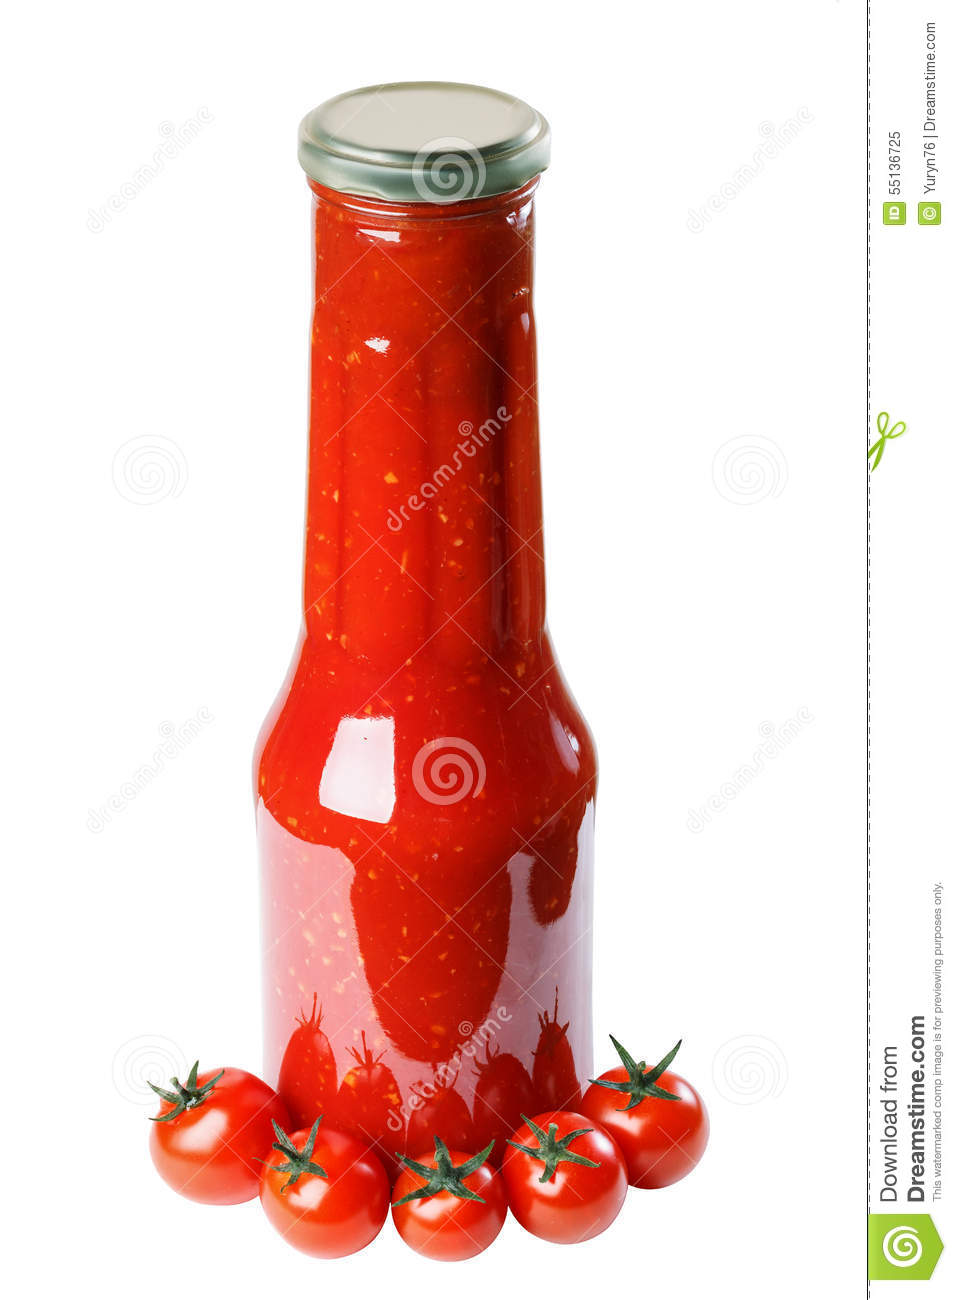 how to make tomato ketchup at home in urdu